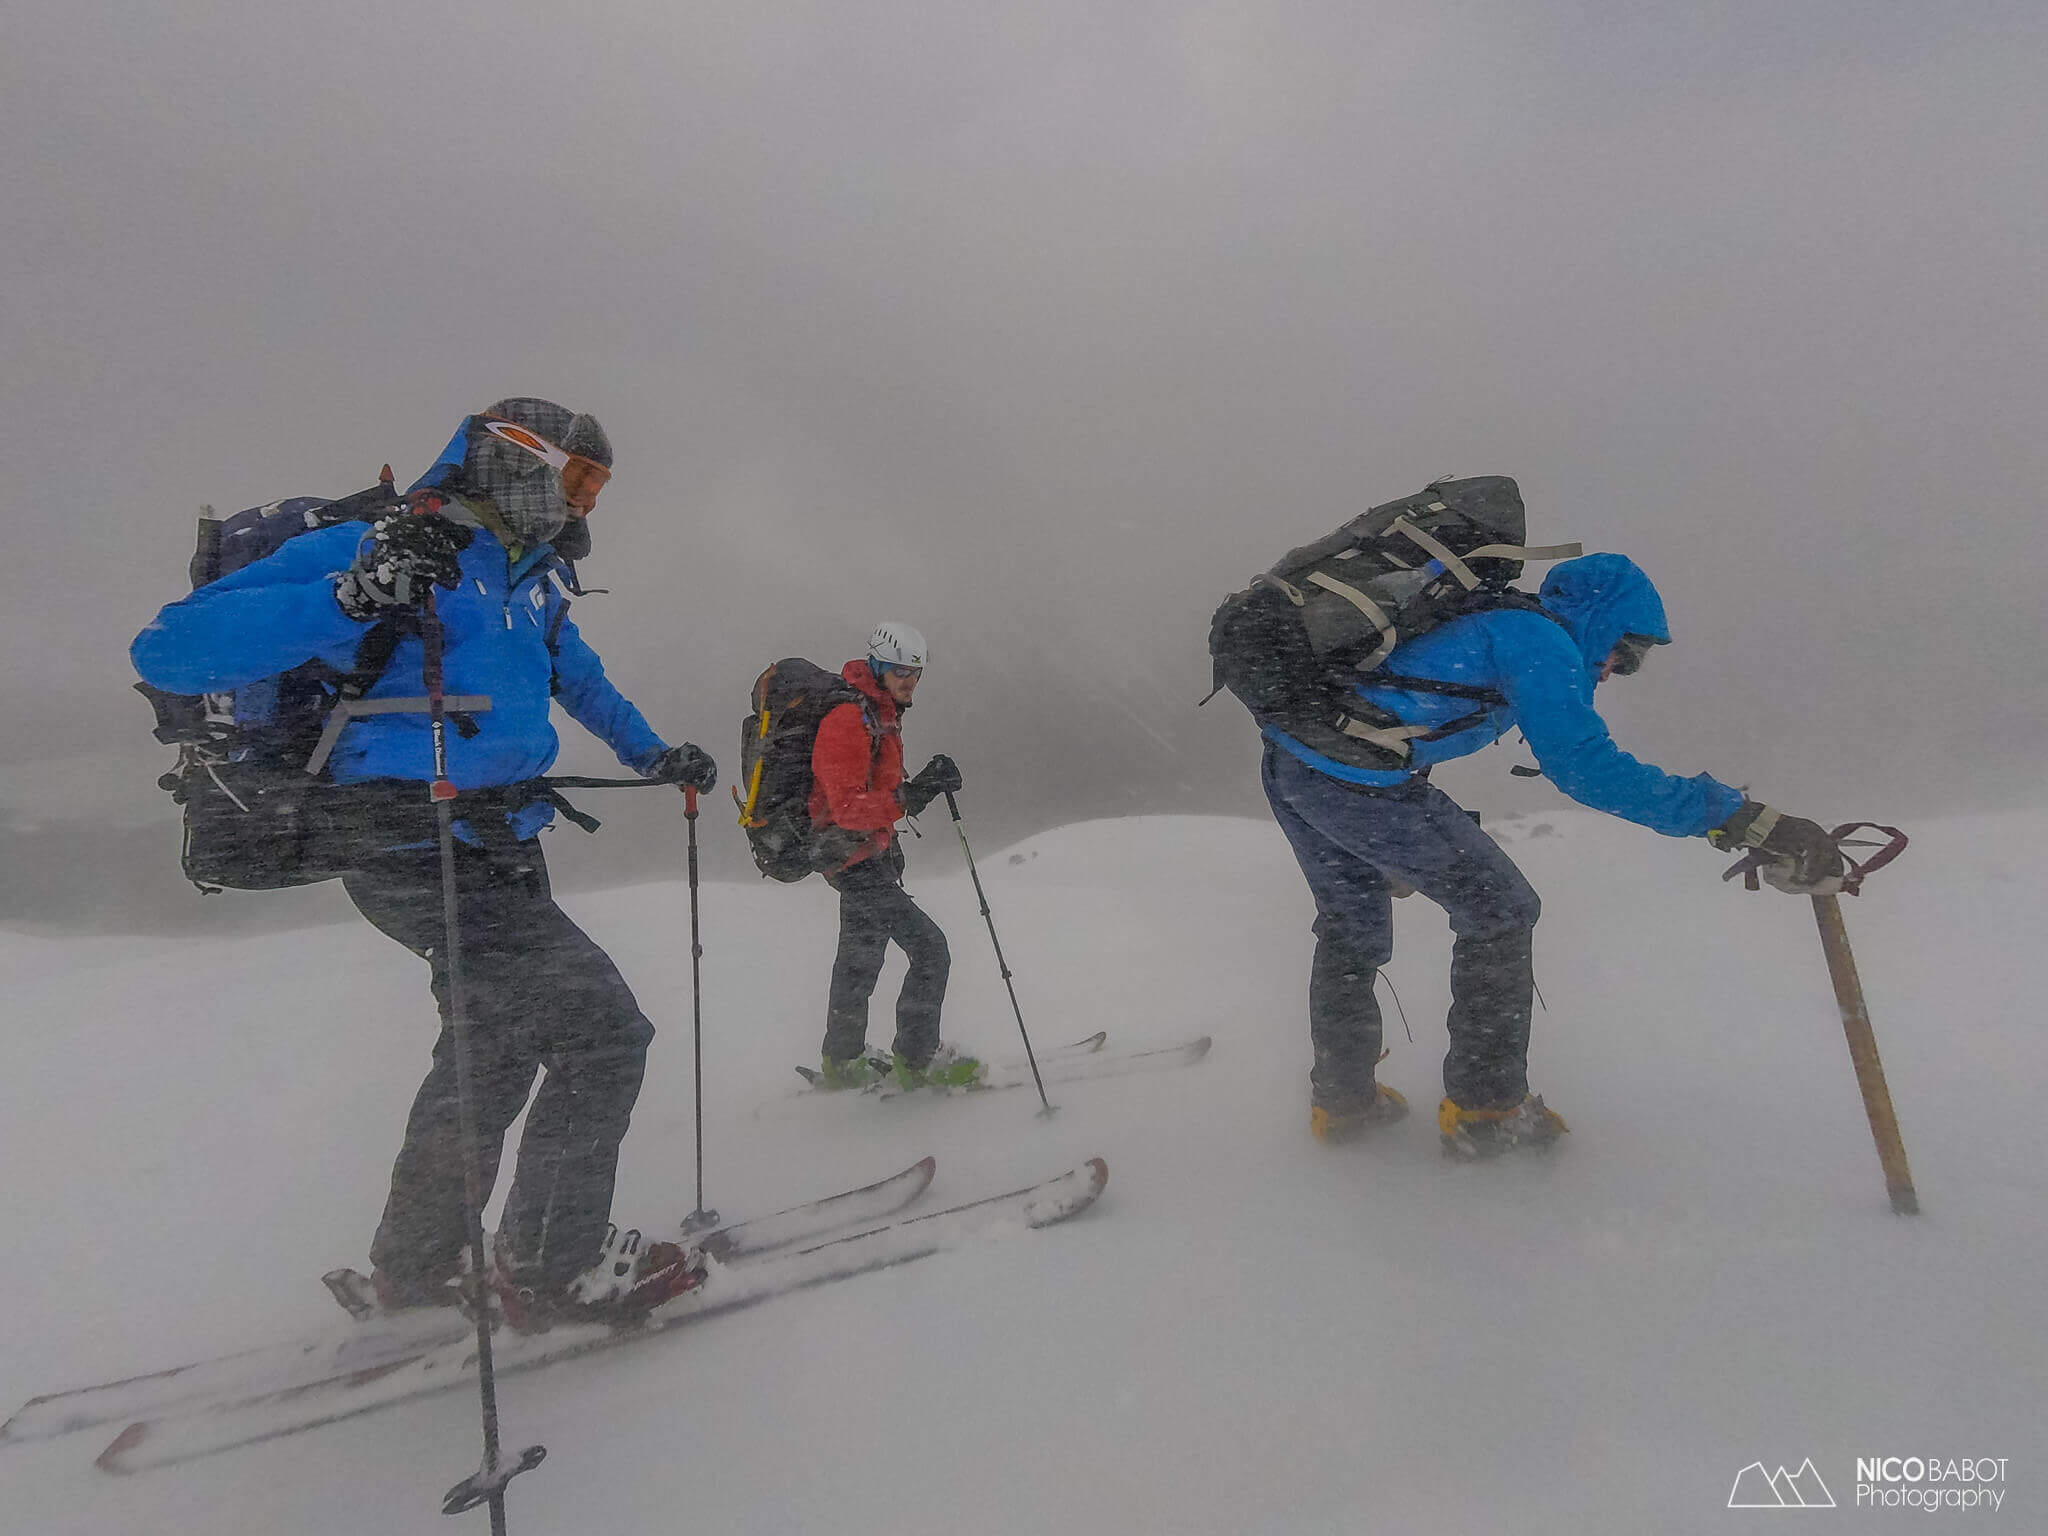 Photography guide Mueller hut - Bad weather Photo by Nico Babot (1)